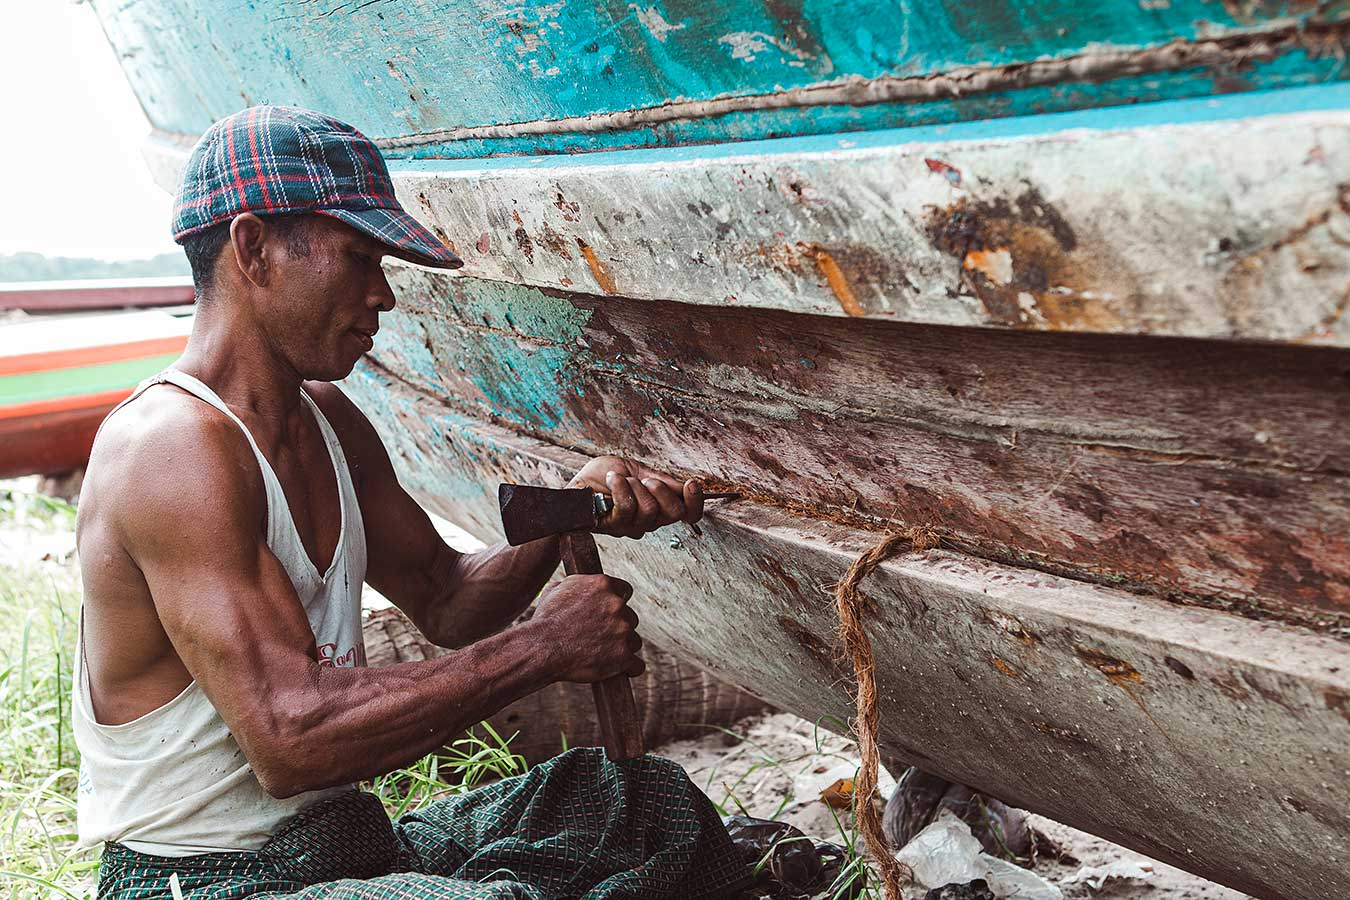 Man repairs his wooden boat with rope - fishing village in Southeast Asia